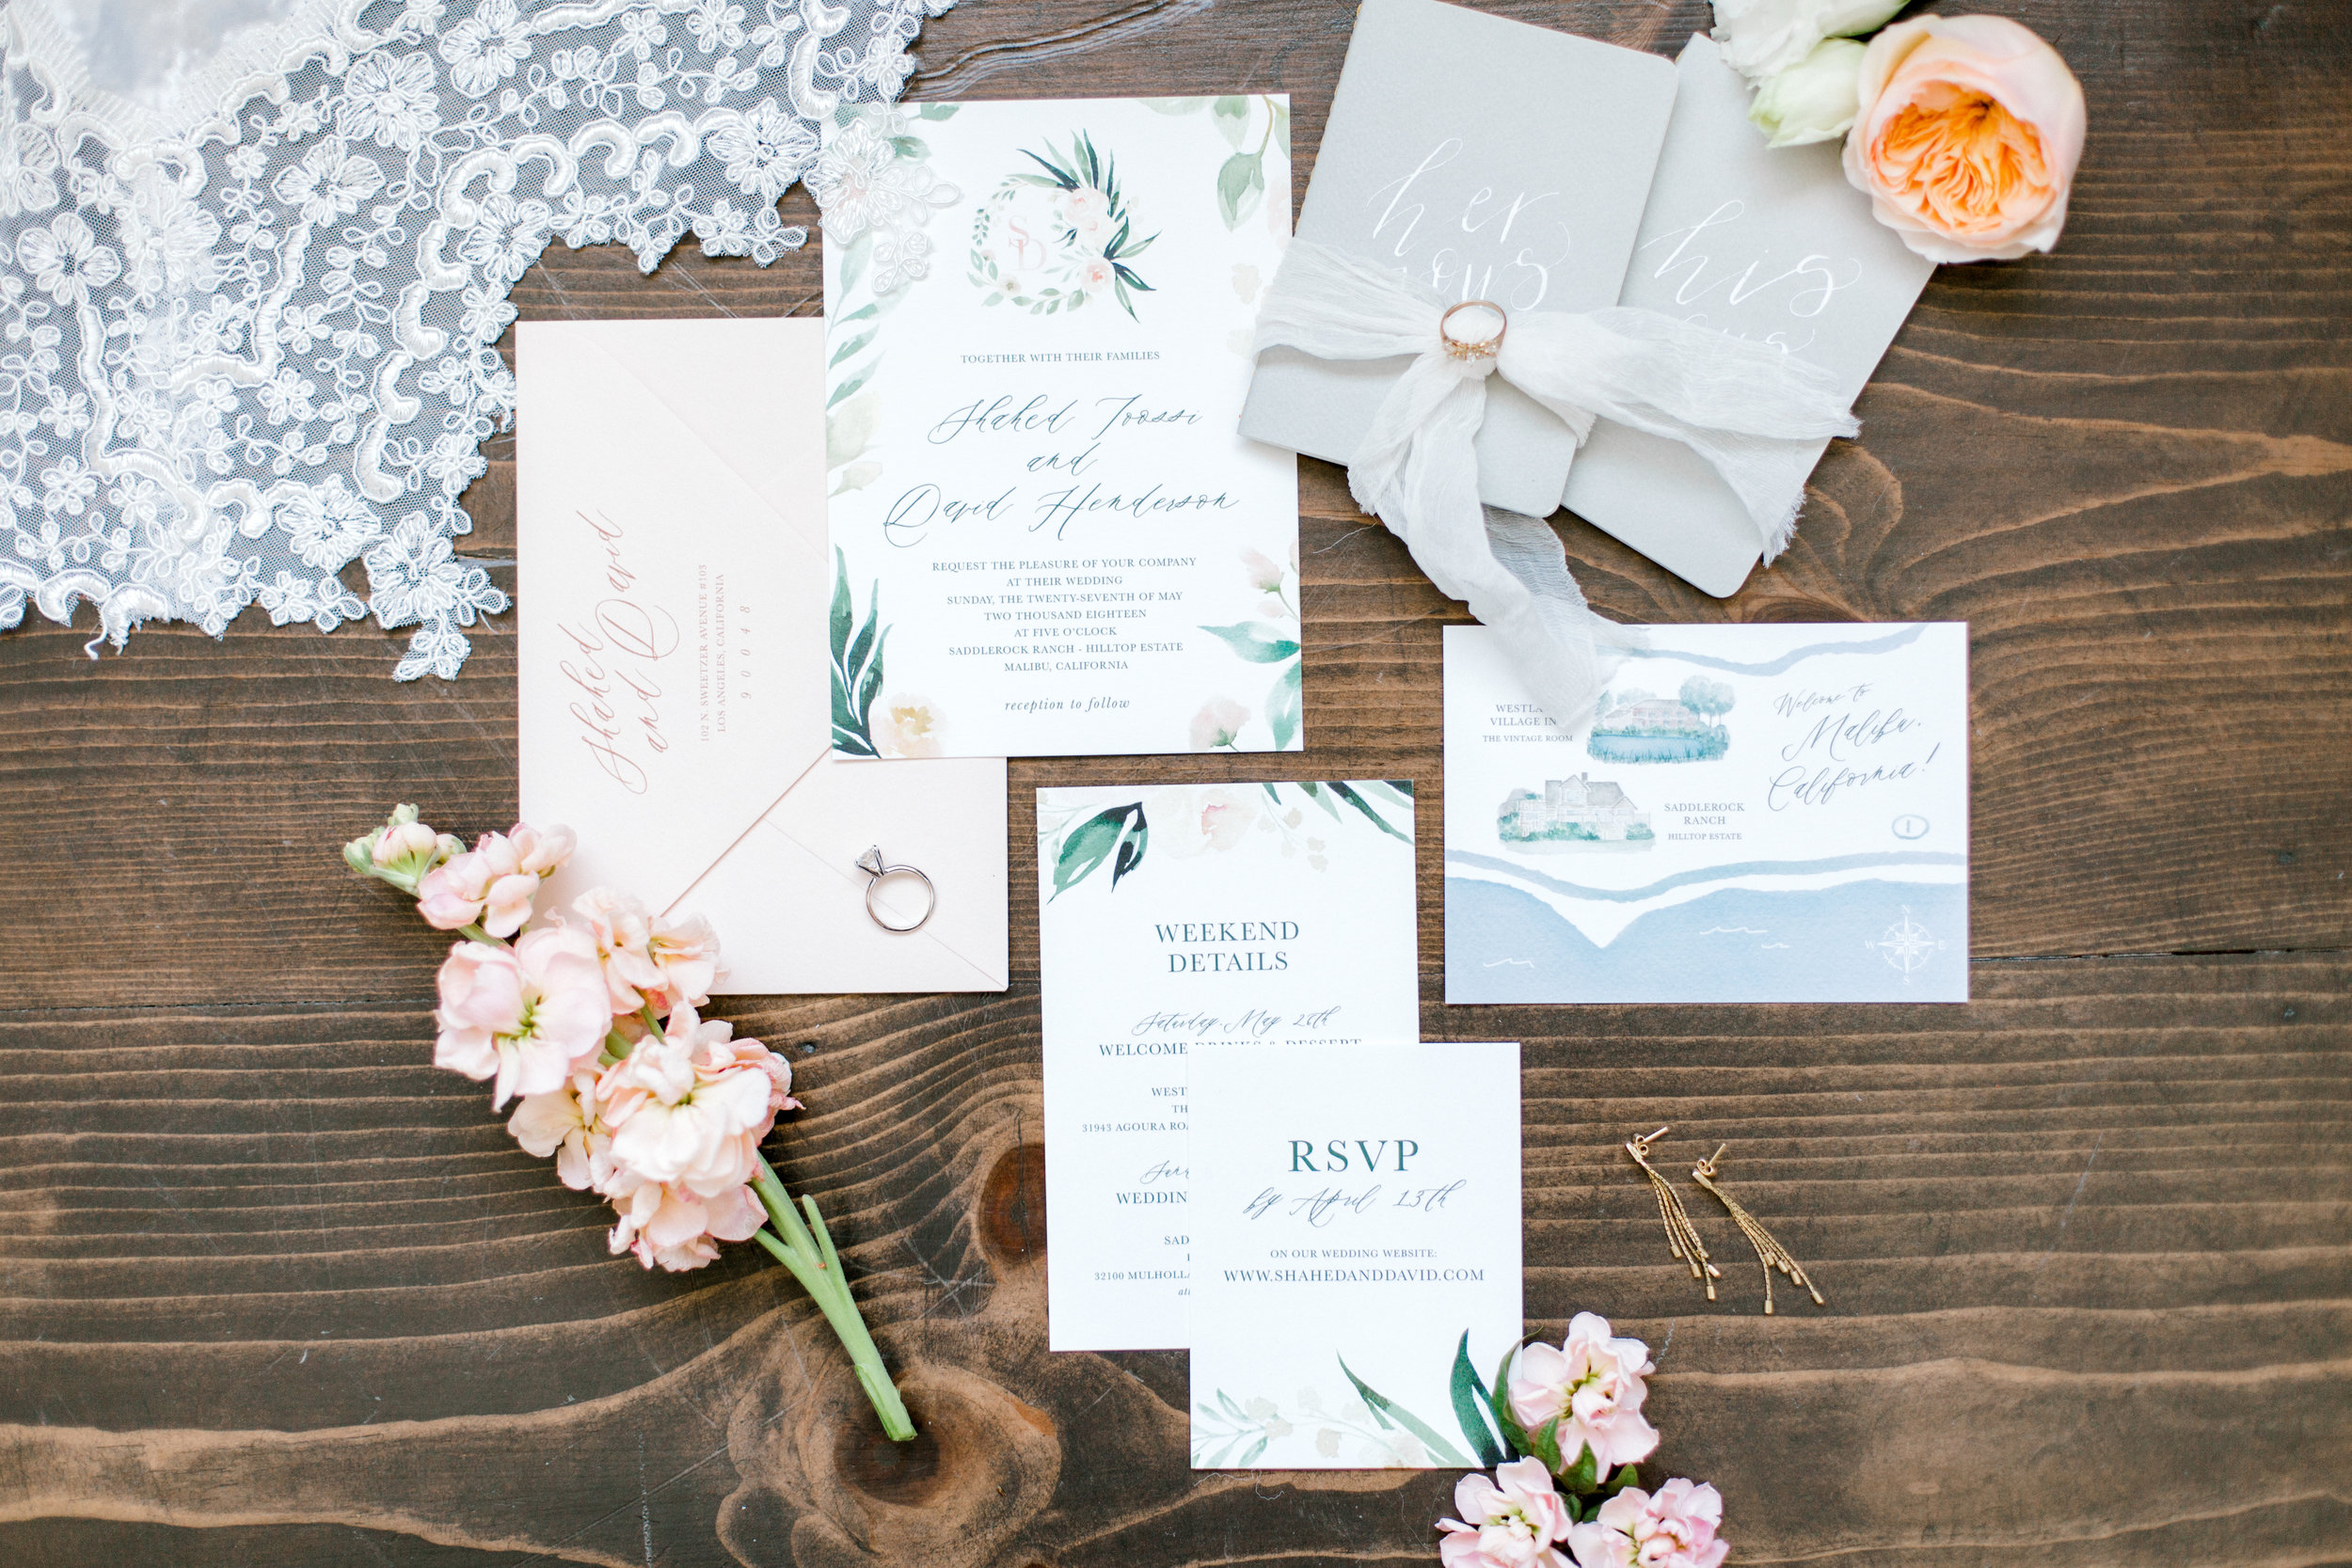 custom rustic wedding invitations, Los Angeles wedding invitations || Orange Blossom Special Events